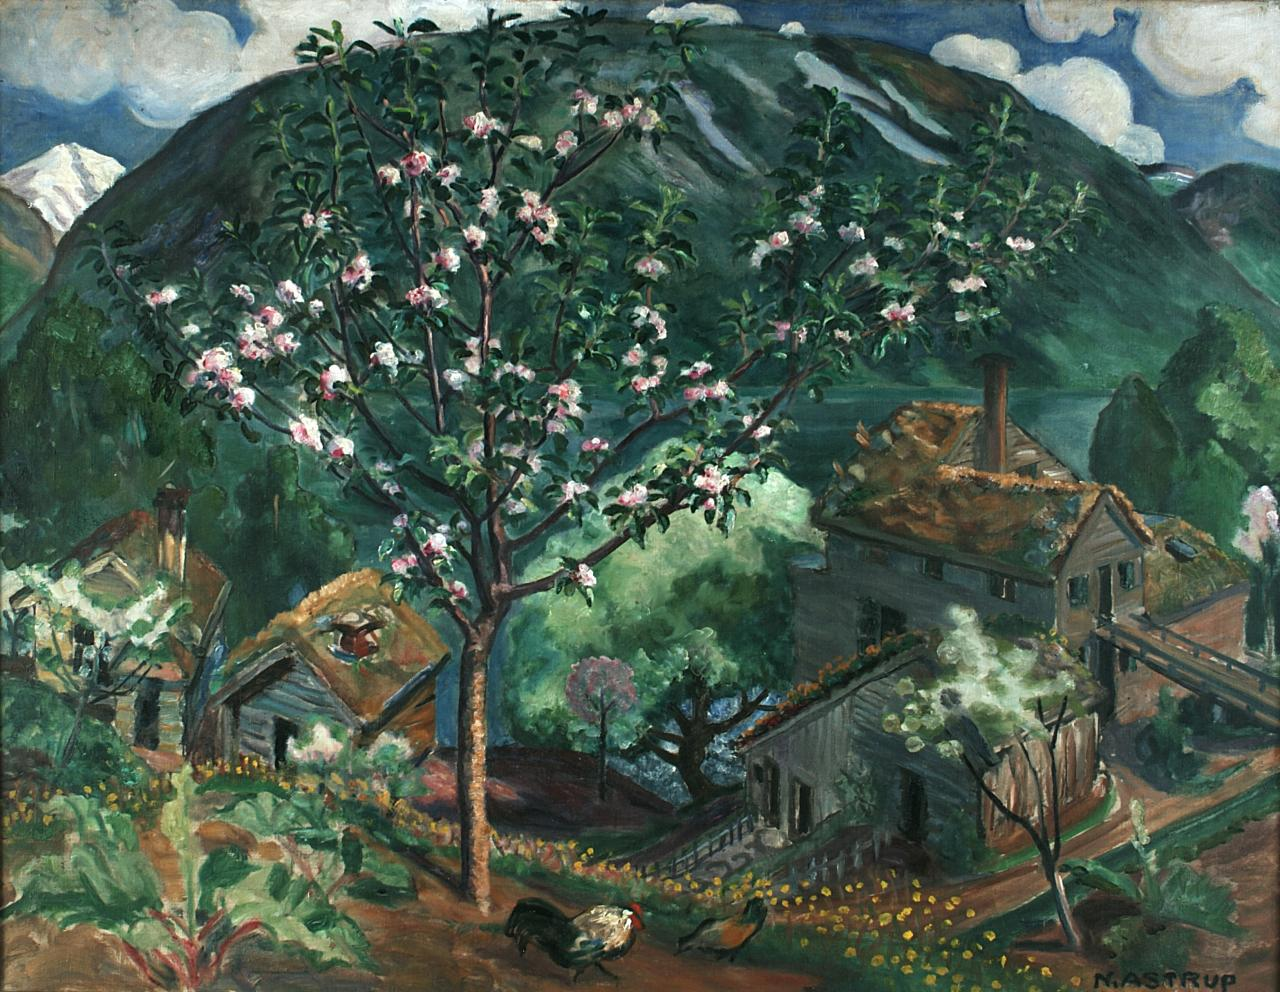 'Apple Tree in Bloom.' Image: Courtesy of Nikolai-Astrup.no. Unauthorized use is prohibited.